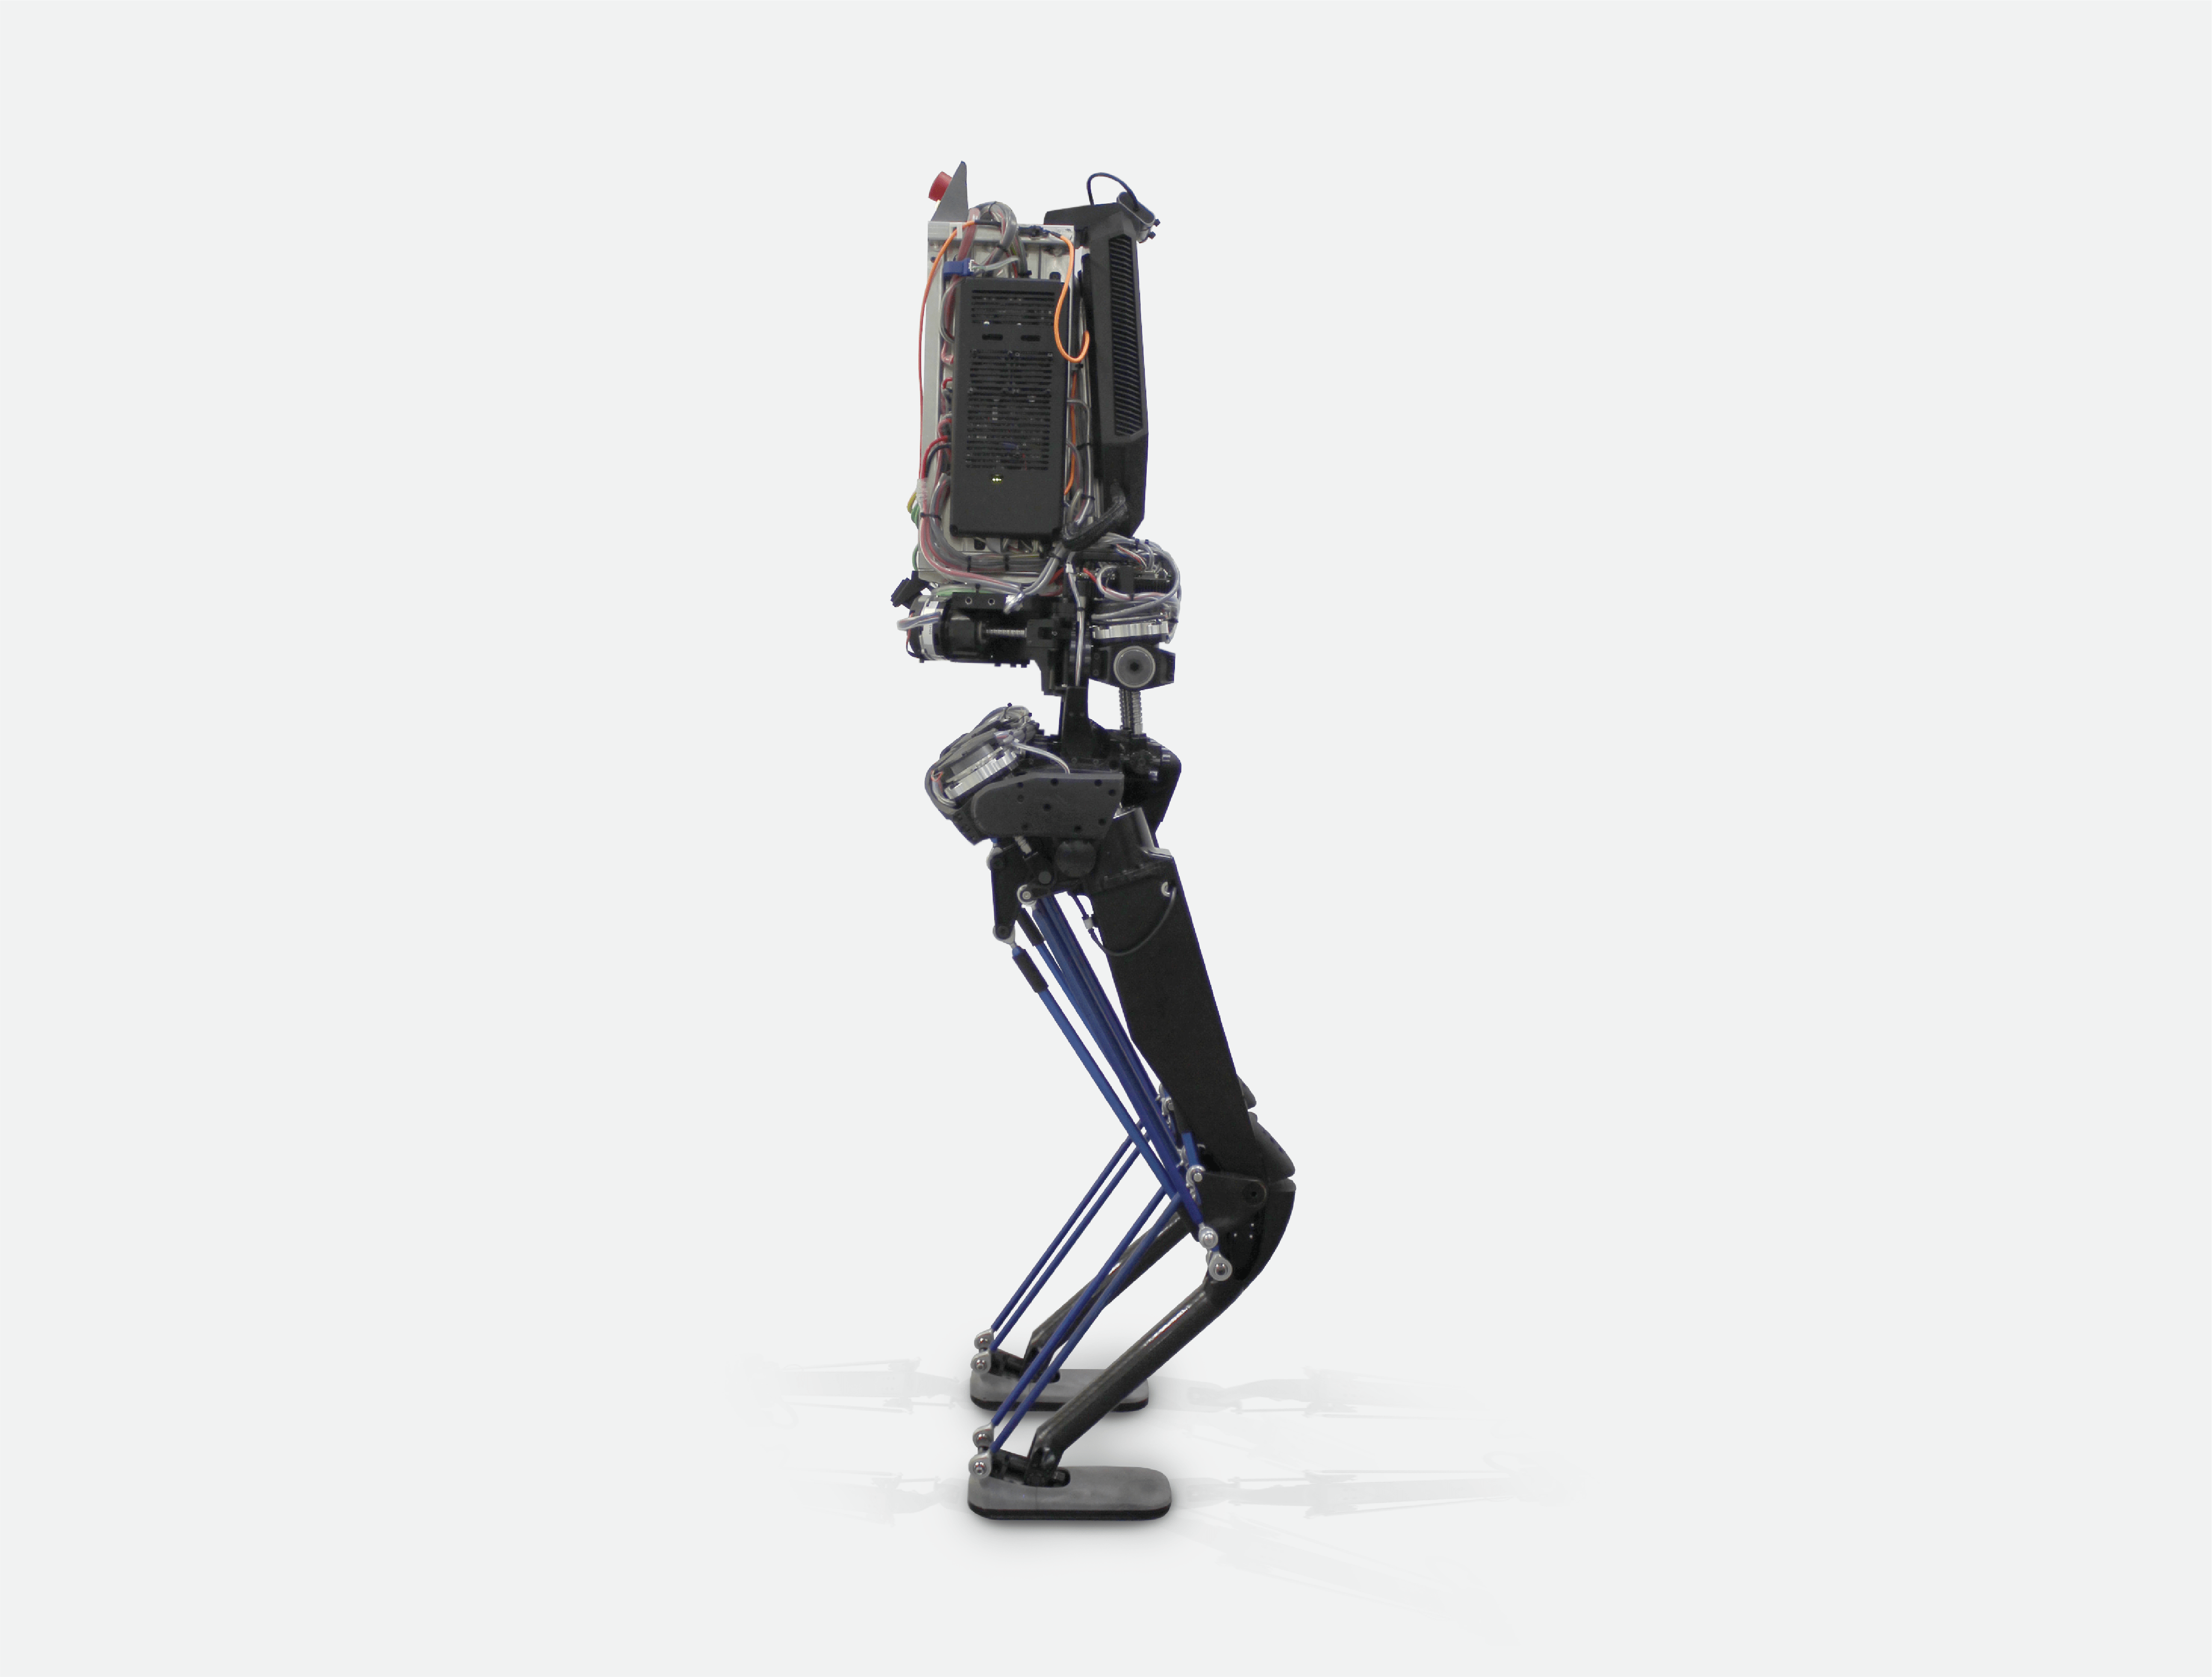 kangaroo robot by pal robotics from the side